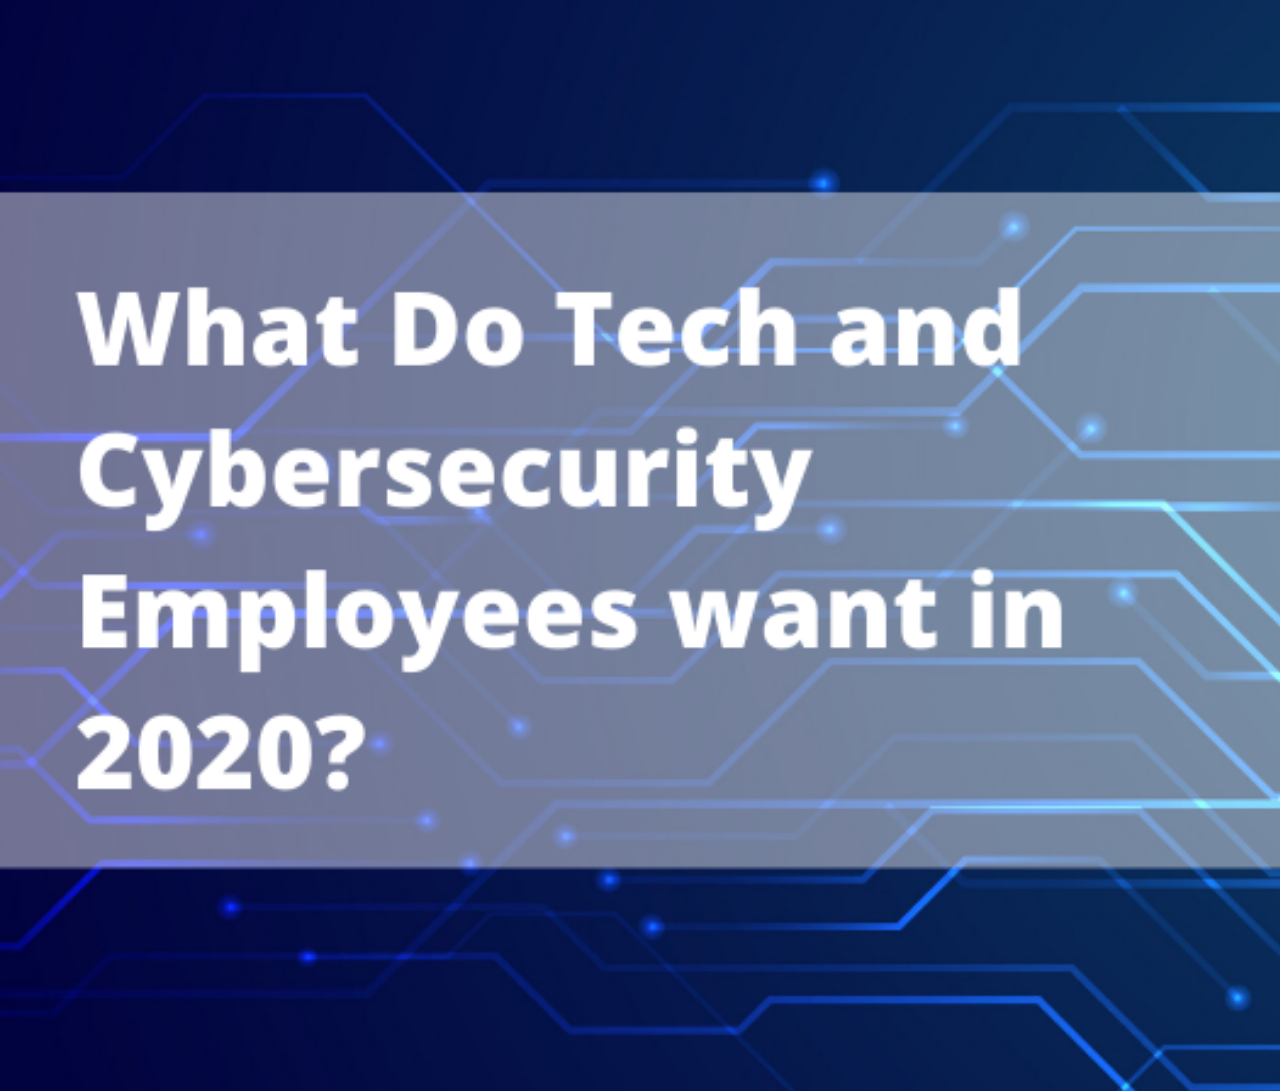 4 Benefits Employees in Singapore's Tech and Cybersecurity Industry Want From Their Jobs in 2020